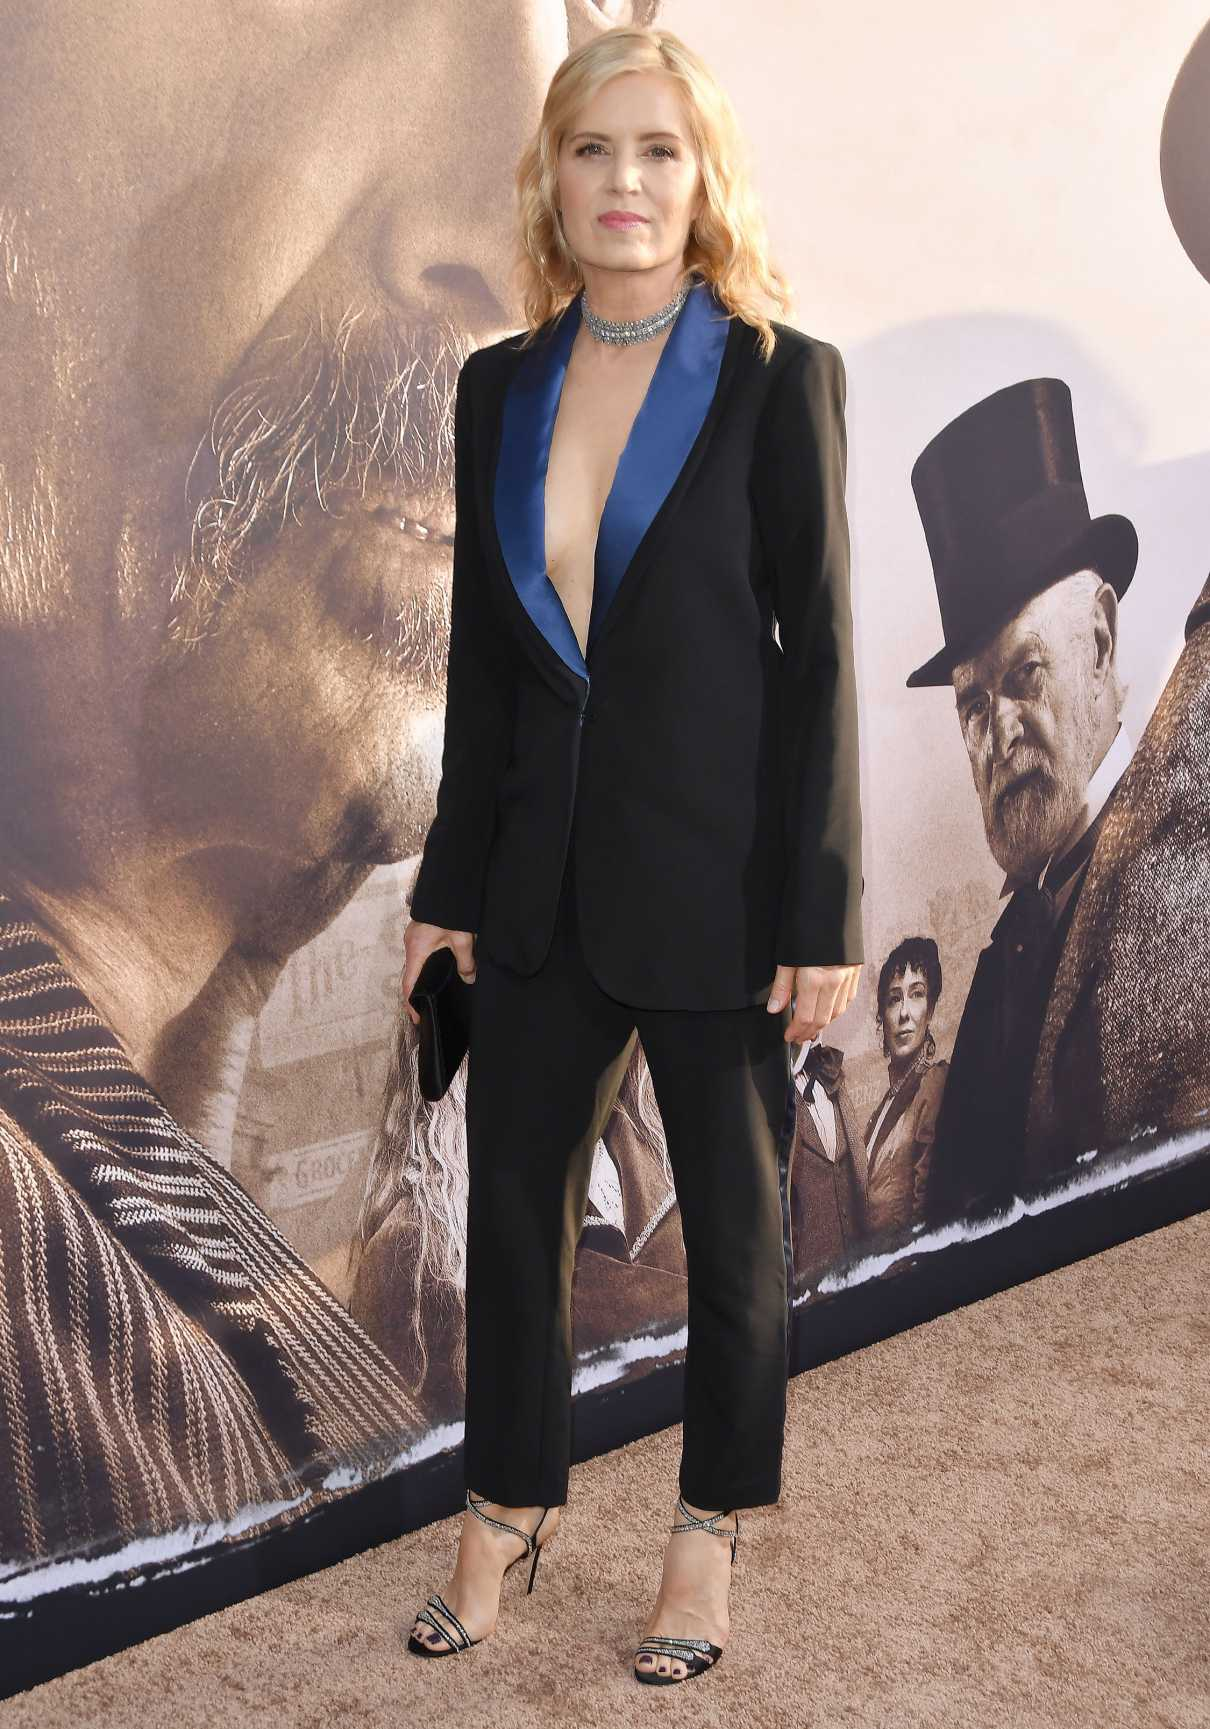 Man kim dickens hollow Too Much